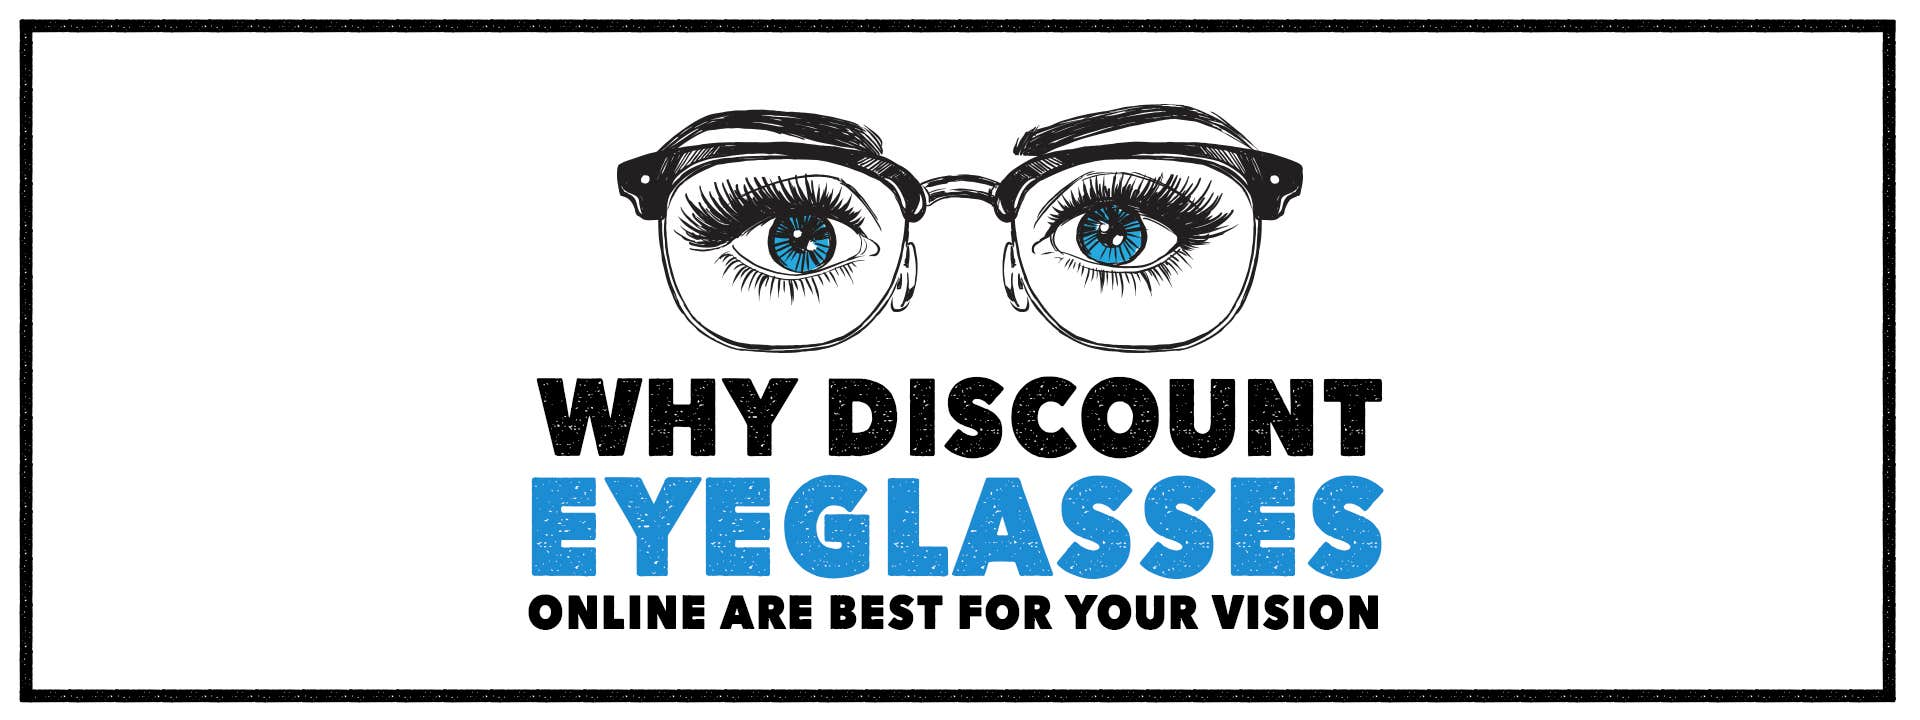 Why Discount Eyeglasses Online Are Best For Your Vision